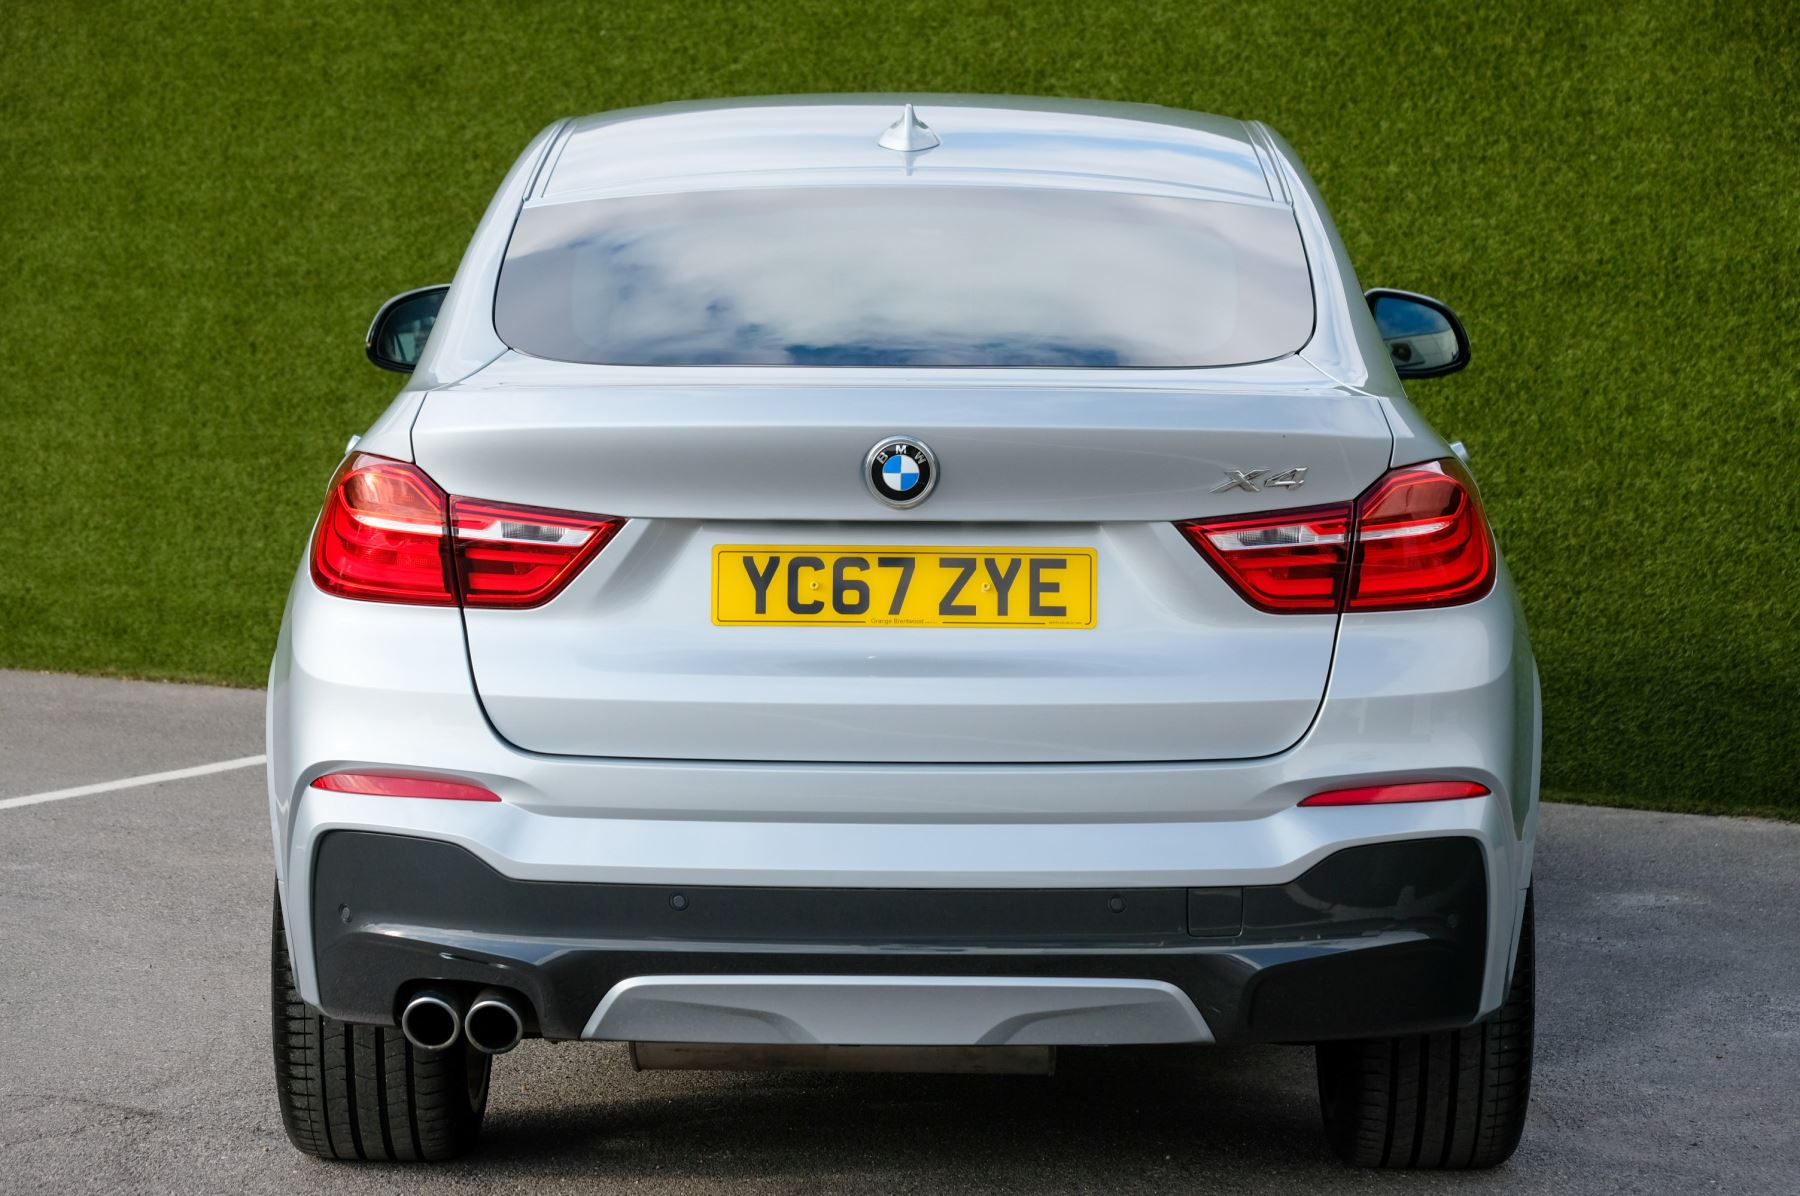 BMW X4 xDrive30d M Sport 5dr Step - M Sport Plus Package - Interior Comfort Package - Elec Glass Sunroof -  image 4